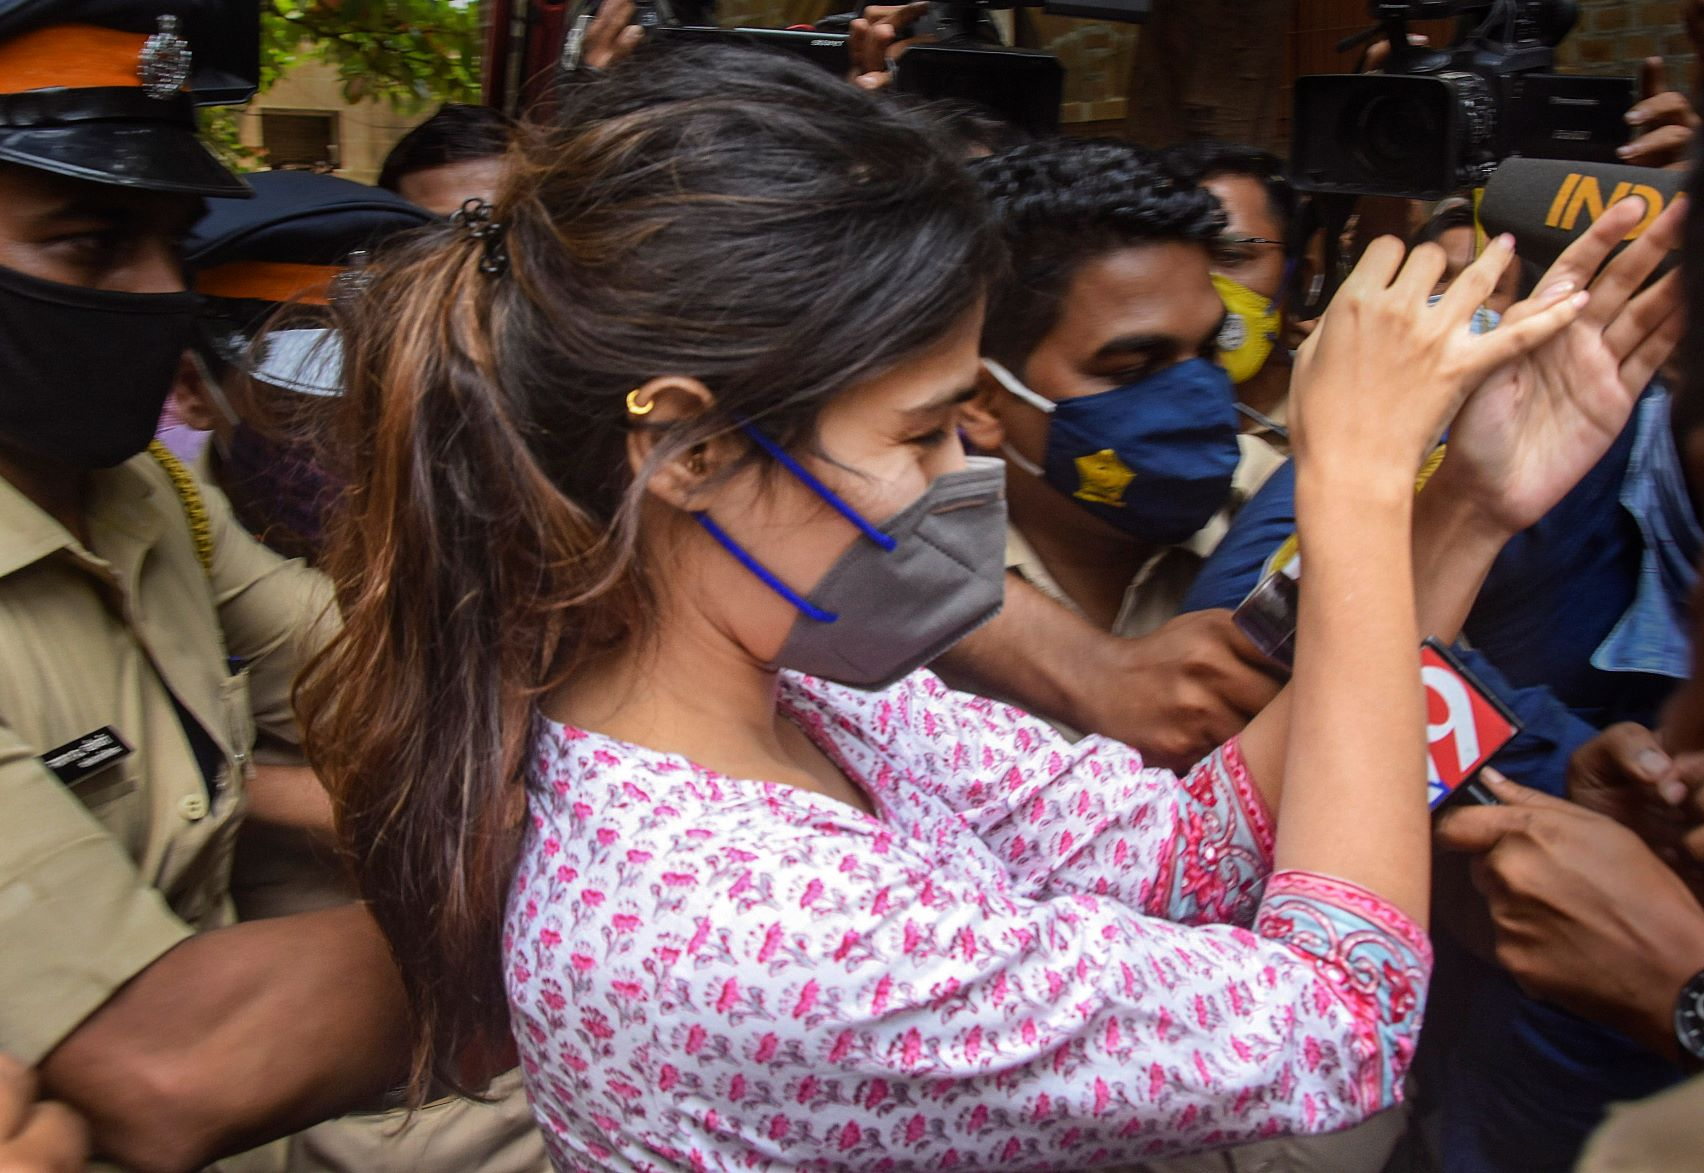 Mumbai: Rhea Chakraborty outside NCB office after being summoned for questioning in connection with the death by suicide case of Sushant Singh Rajput, at Ballard Estate in Mumbai, Sunday, Sept. 6, 2020. (PTI Photo)(PTI06-09-2020 000059B)